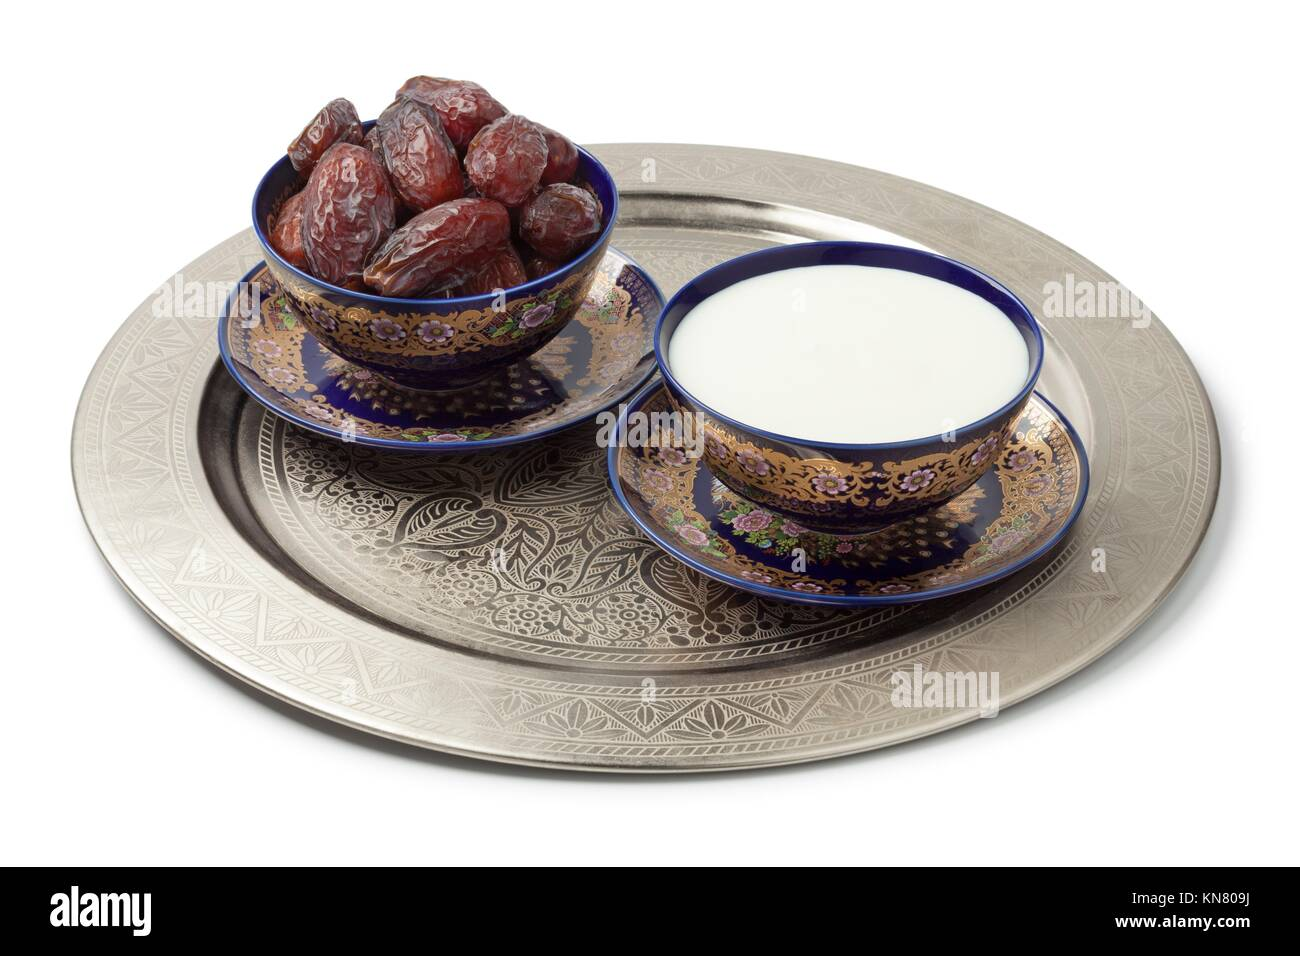 Moroccan bowls stock photos moroccan bowls stock images alamy festive moroccan bowls with milk and dates on white background stock image reviewsmspy